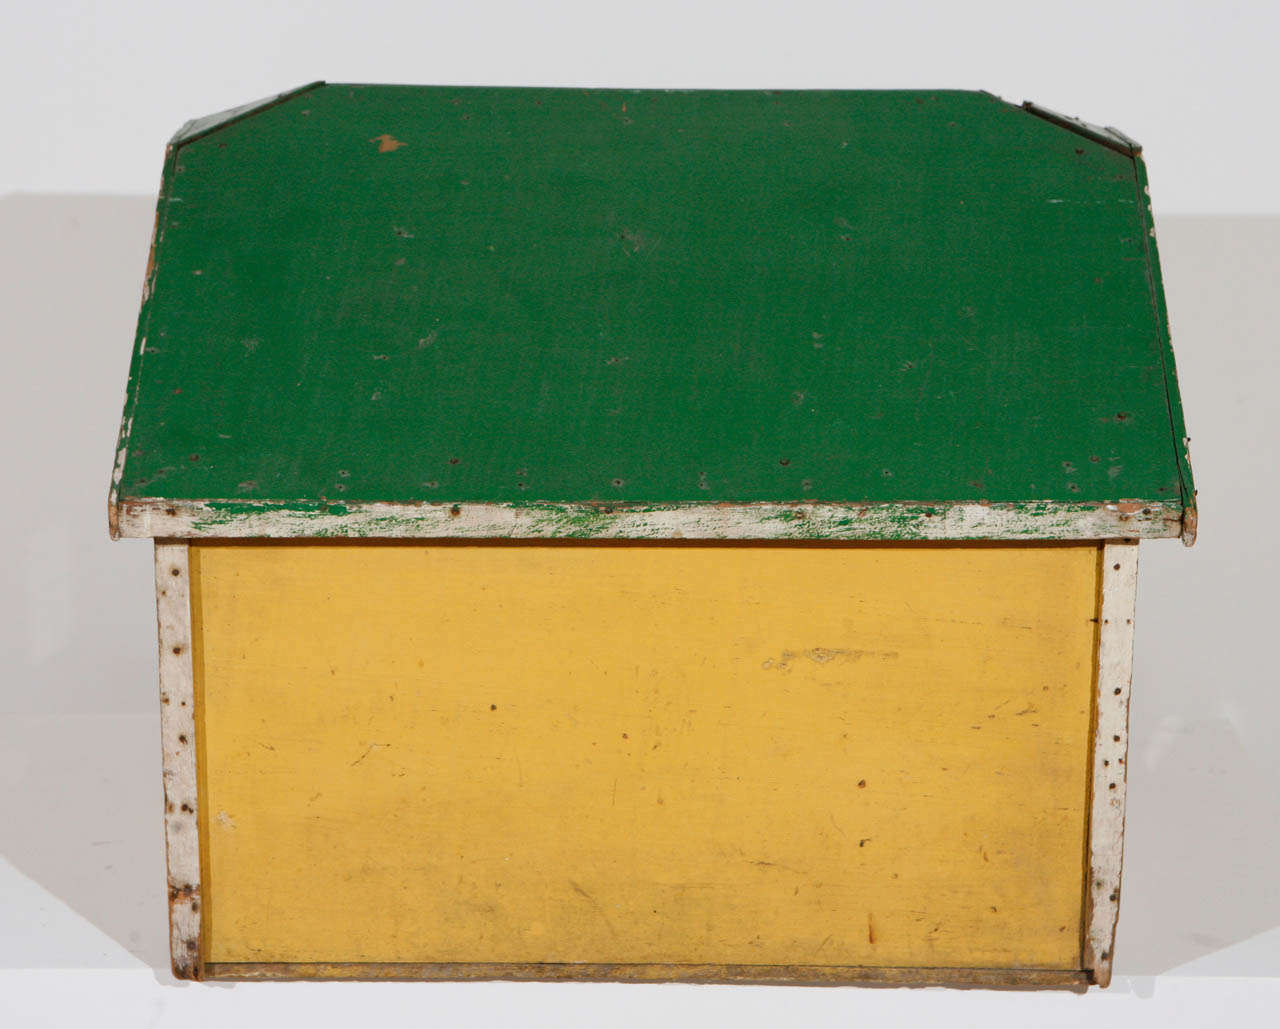 Early 20th Century, Model Barn or Garage, circa 1910-1930 For Sale 2